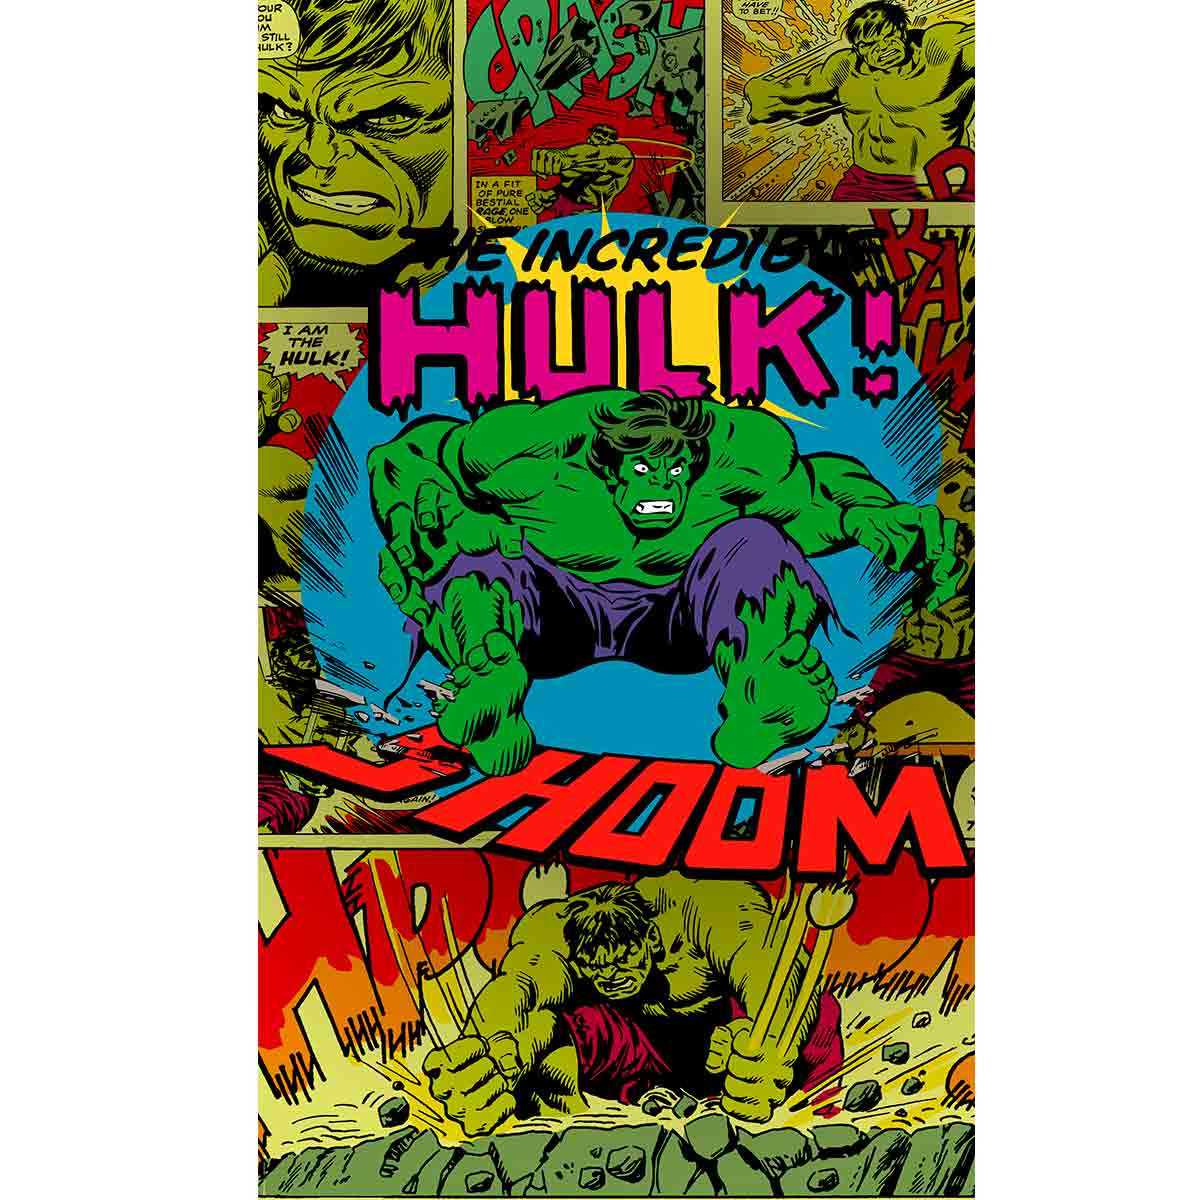 Poster géant intissé The Incredible Hulk Shoom Avengers Marvel Comics